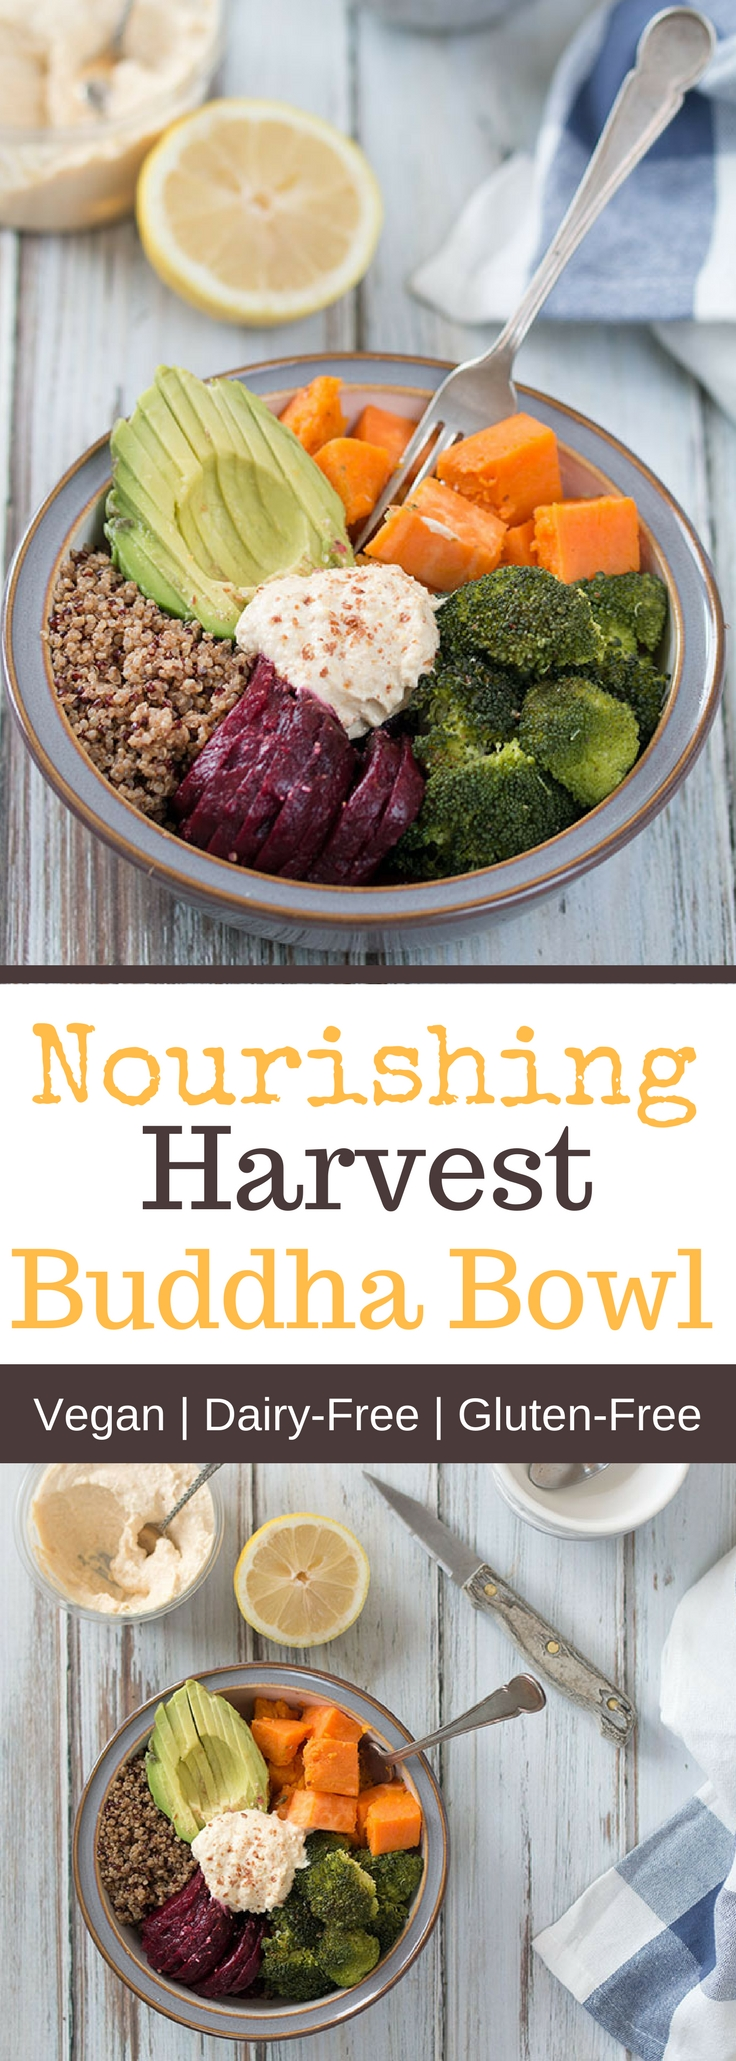 Nourishing Harvest Buddha Bowl